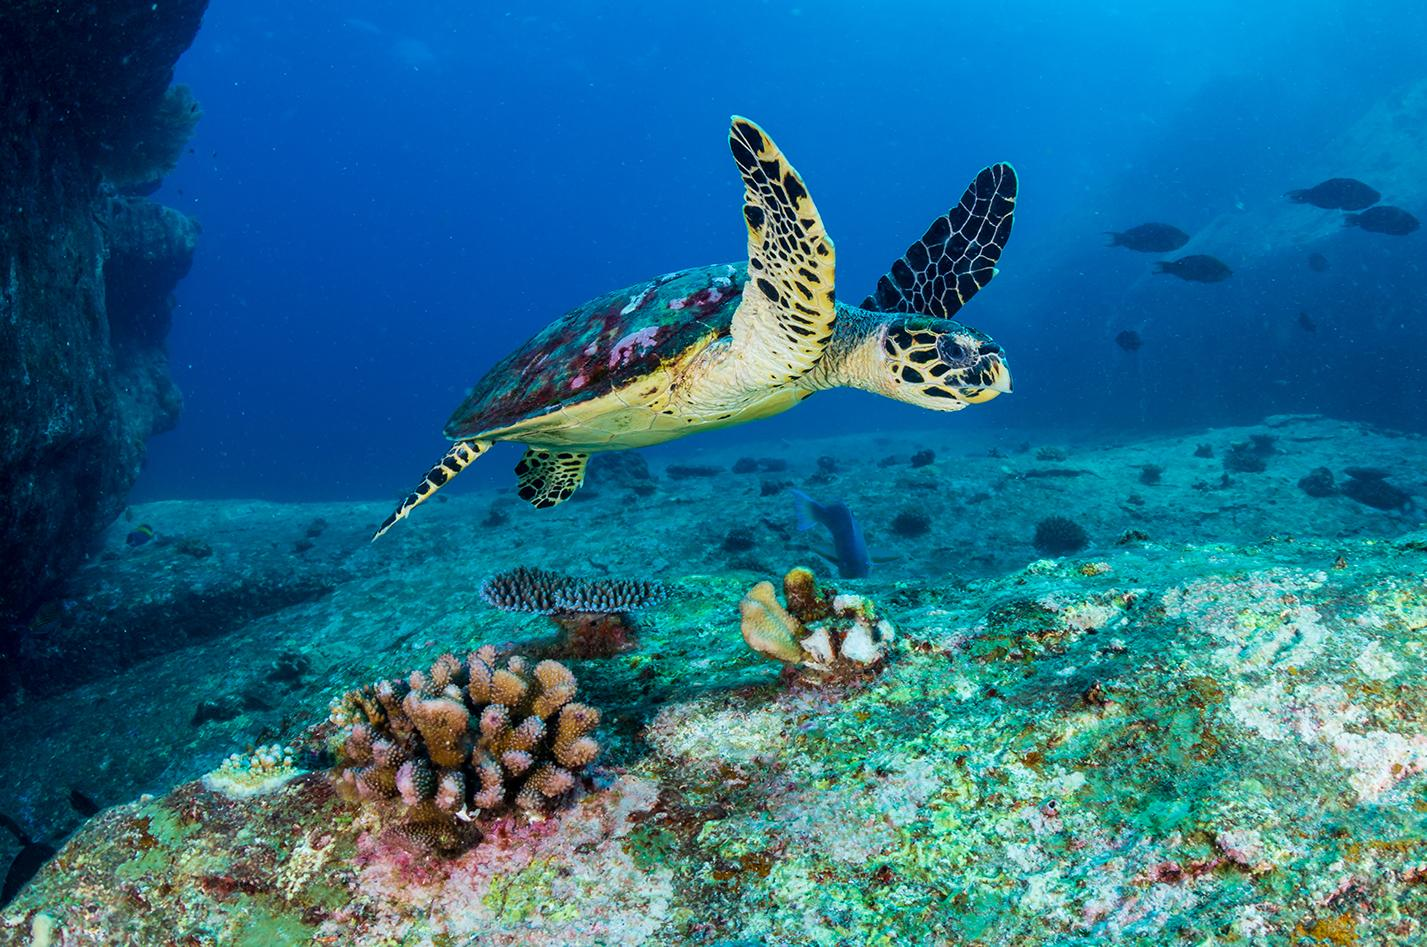 Sea turtle in the water of St. Croix, US Virgin Islands